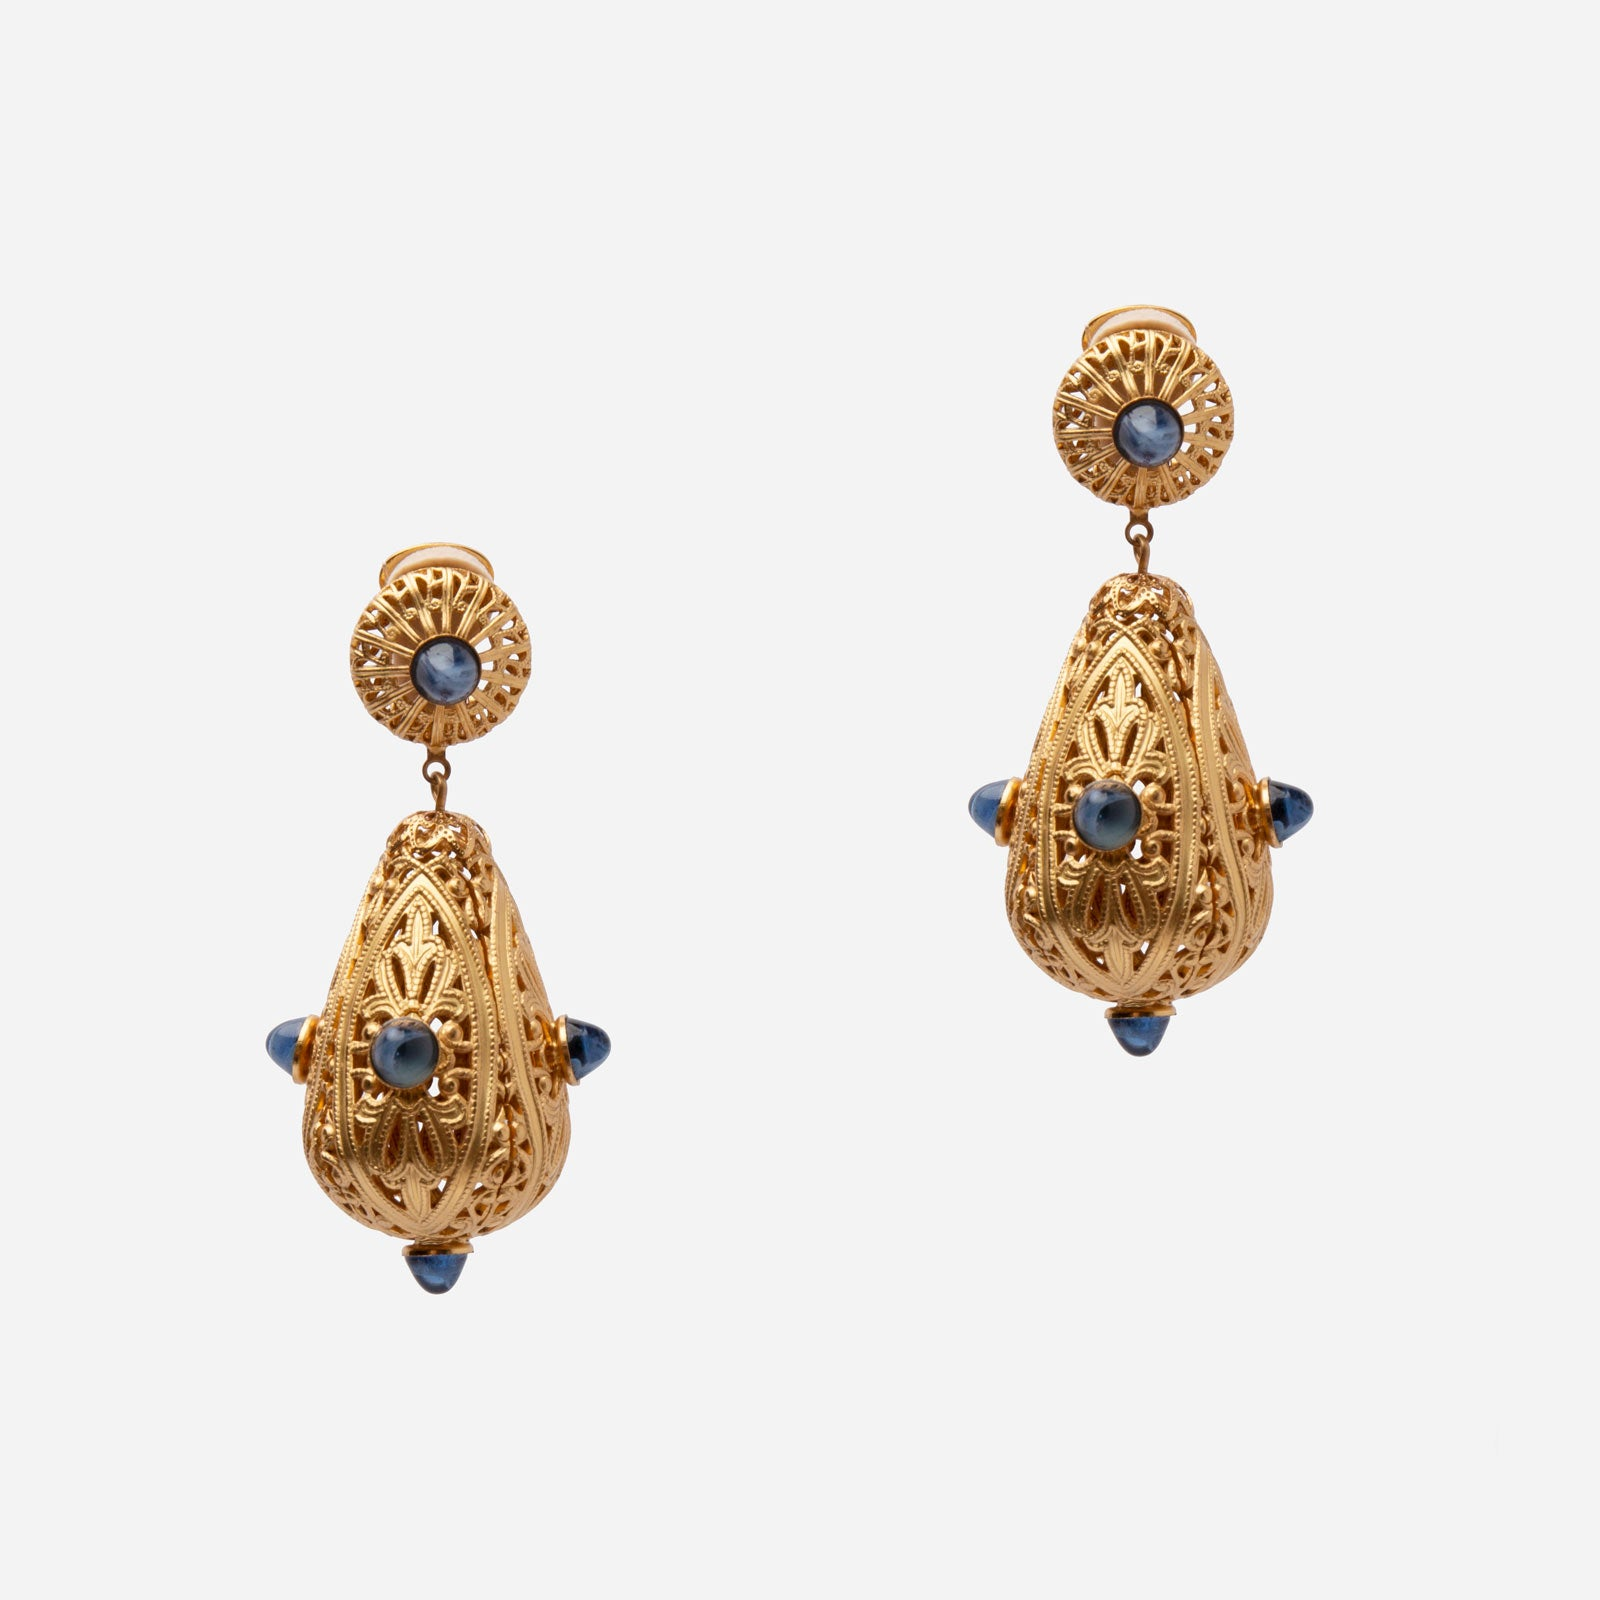 Sapphire Dome Filigree Earrings - Frances Valentine